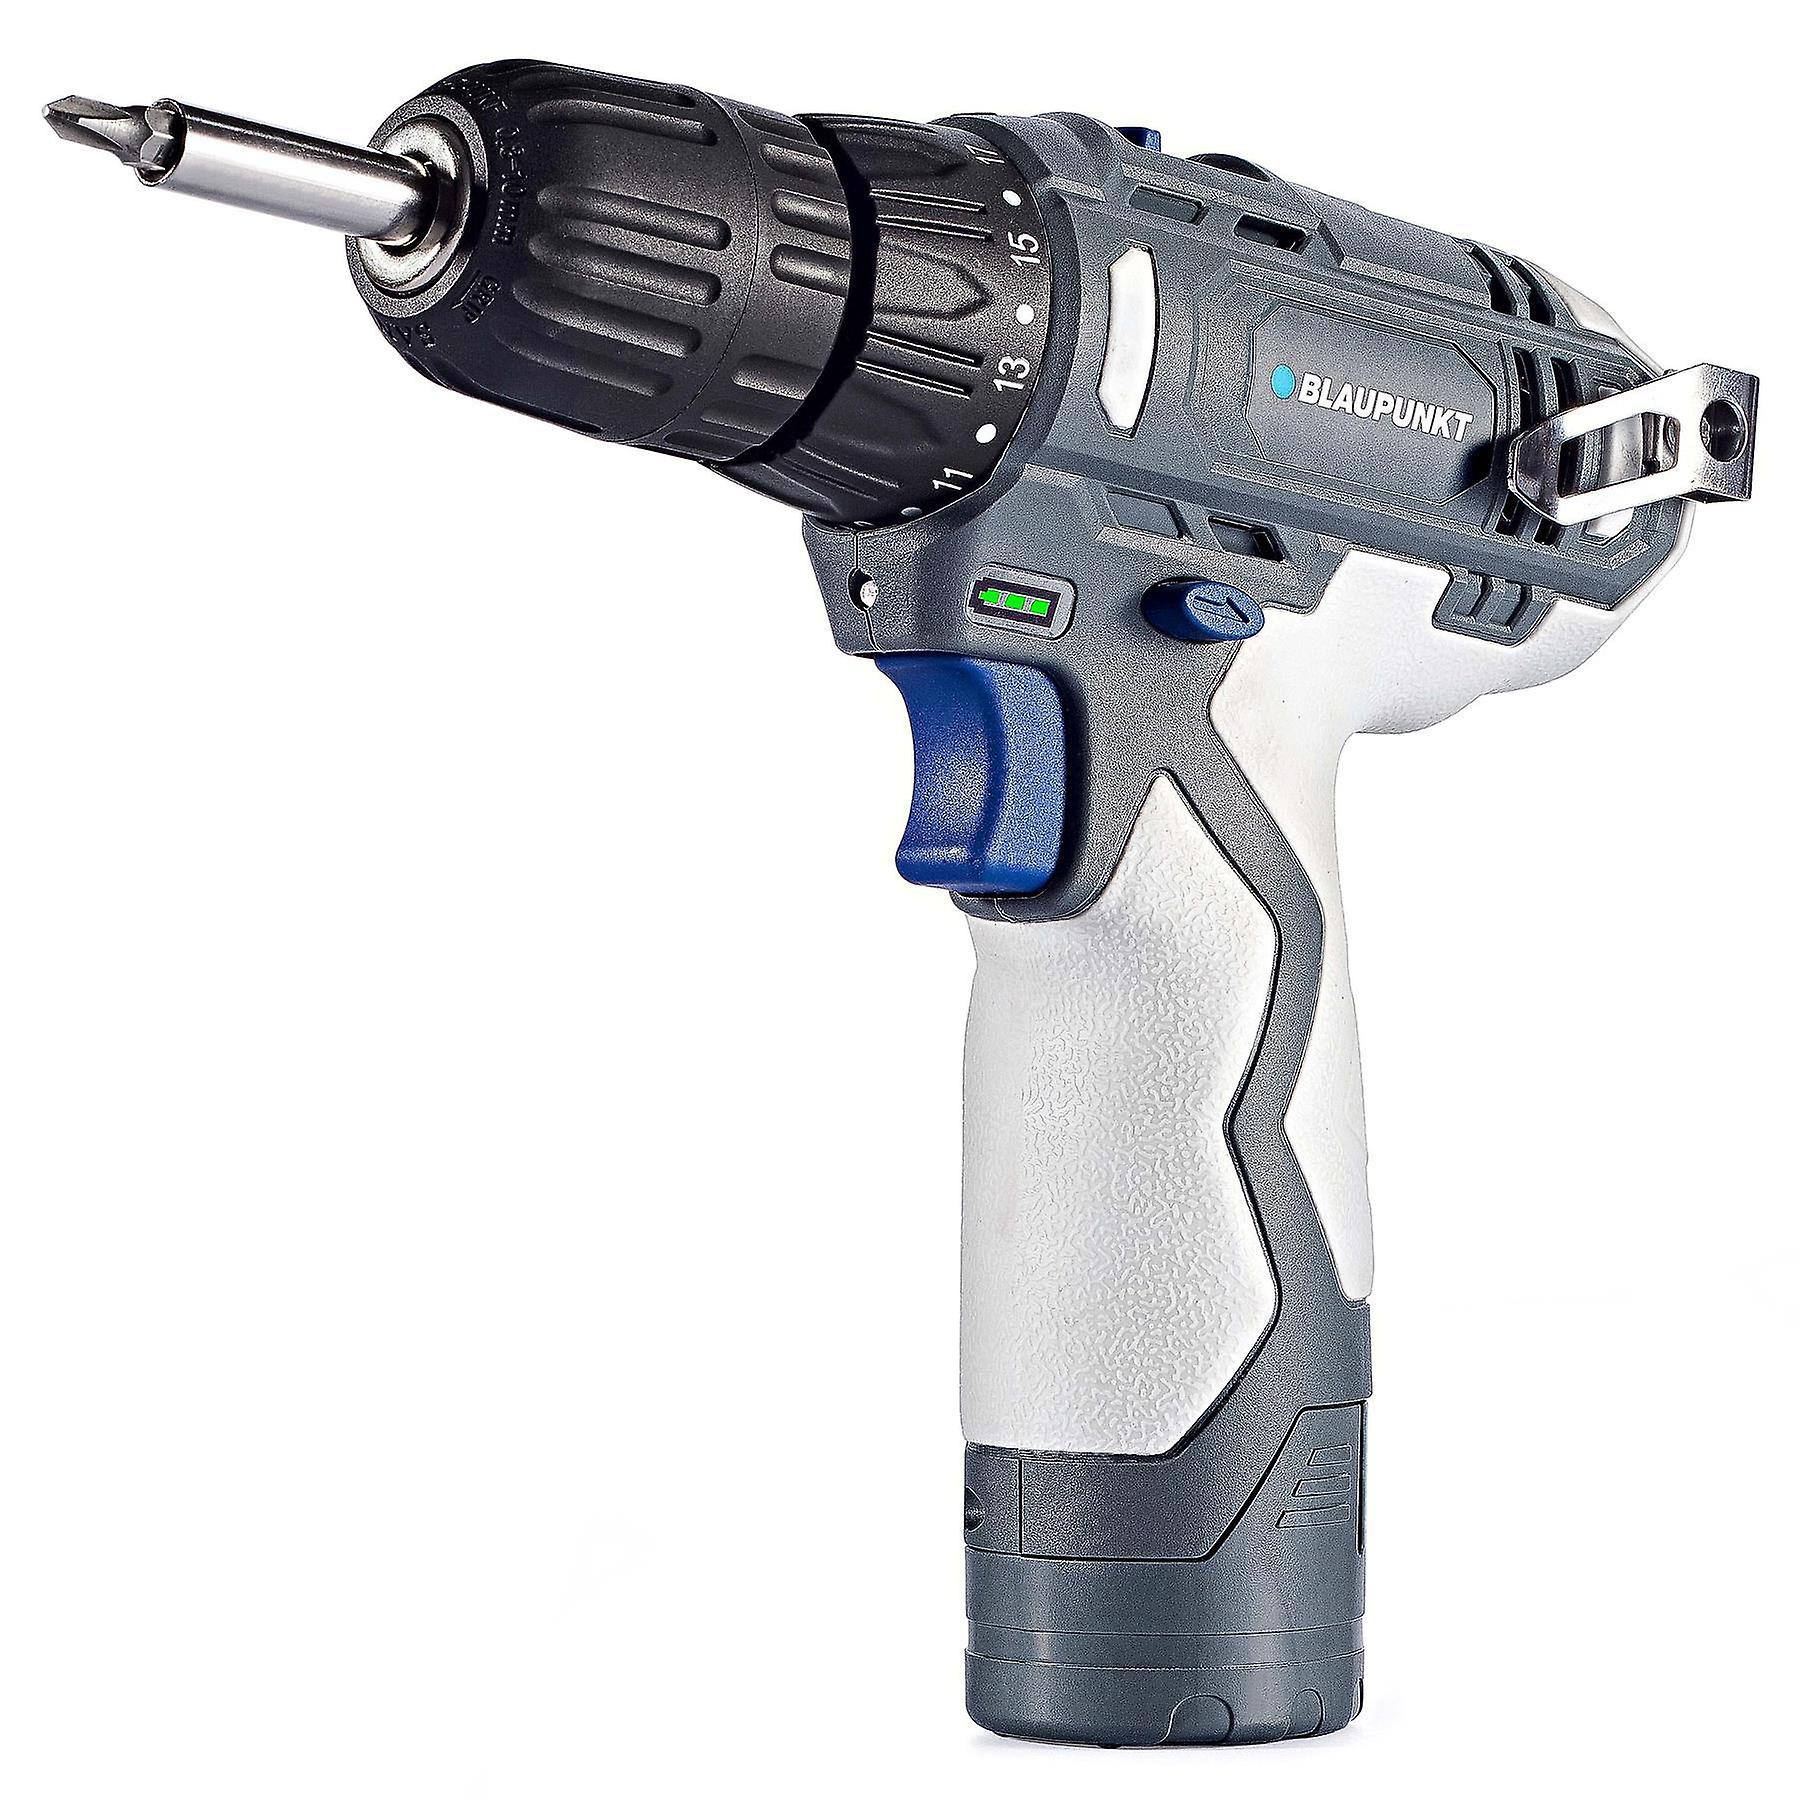 Blaupunkt Compact Cordless Drill Screwdriver - 12V Lithium Ion Battery